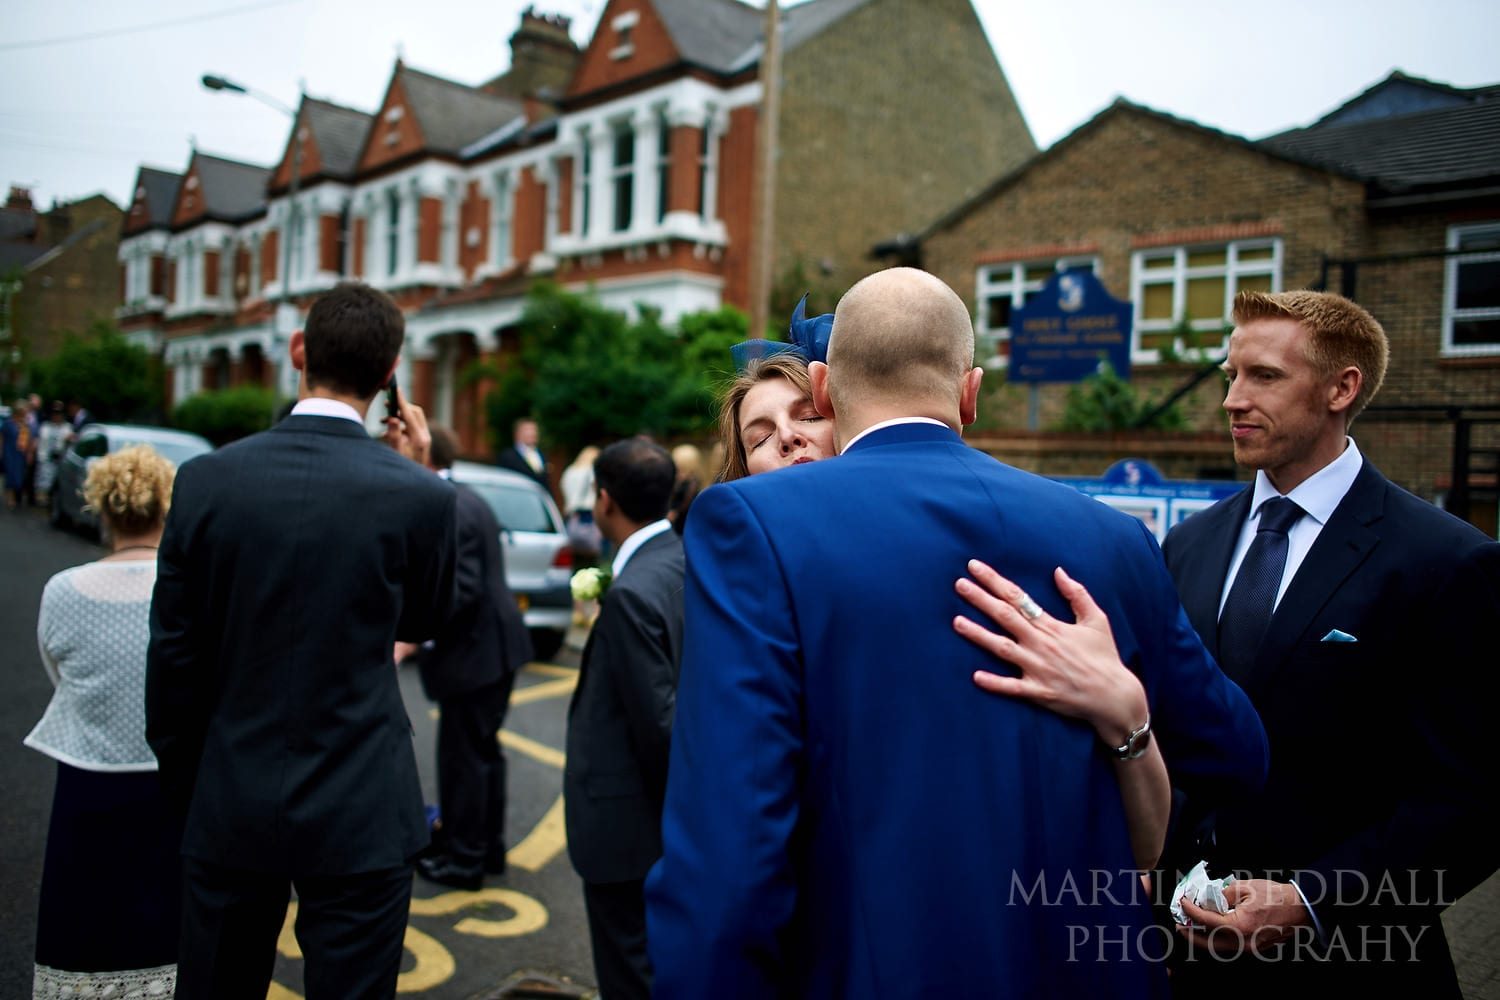 Groom greeting guests oustside the church in Balham